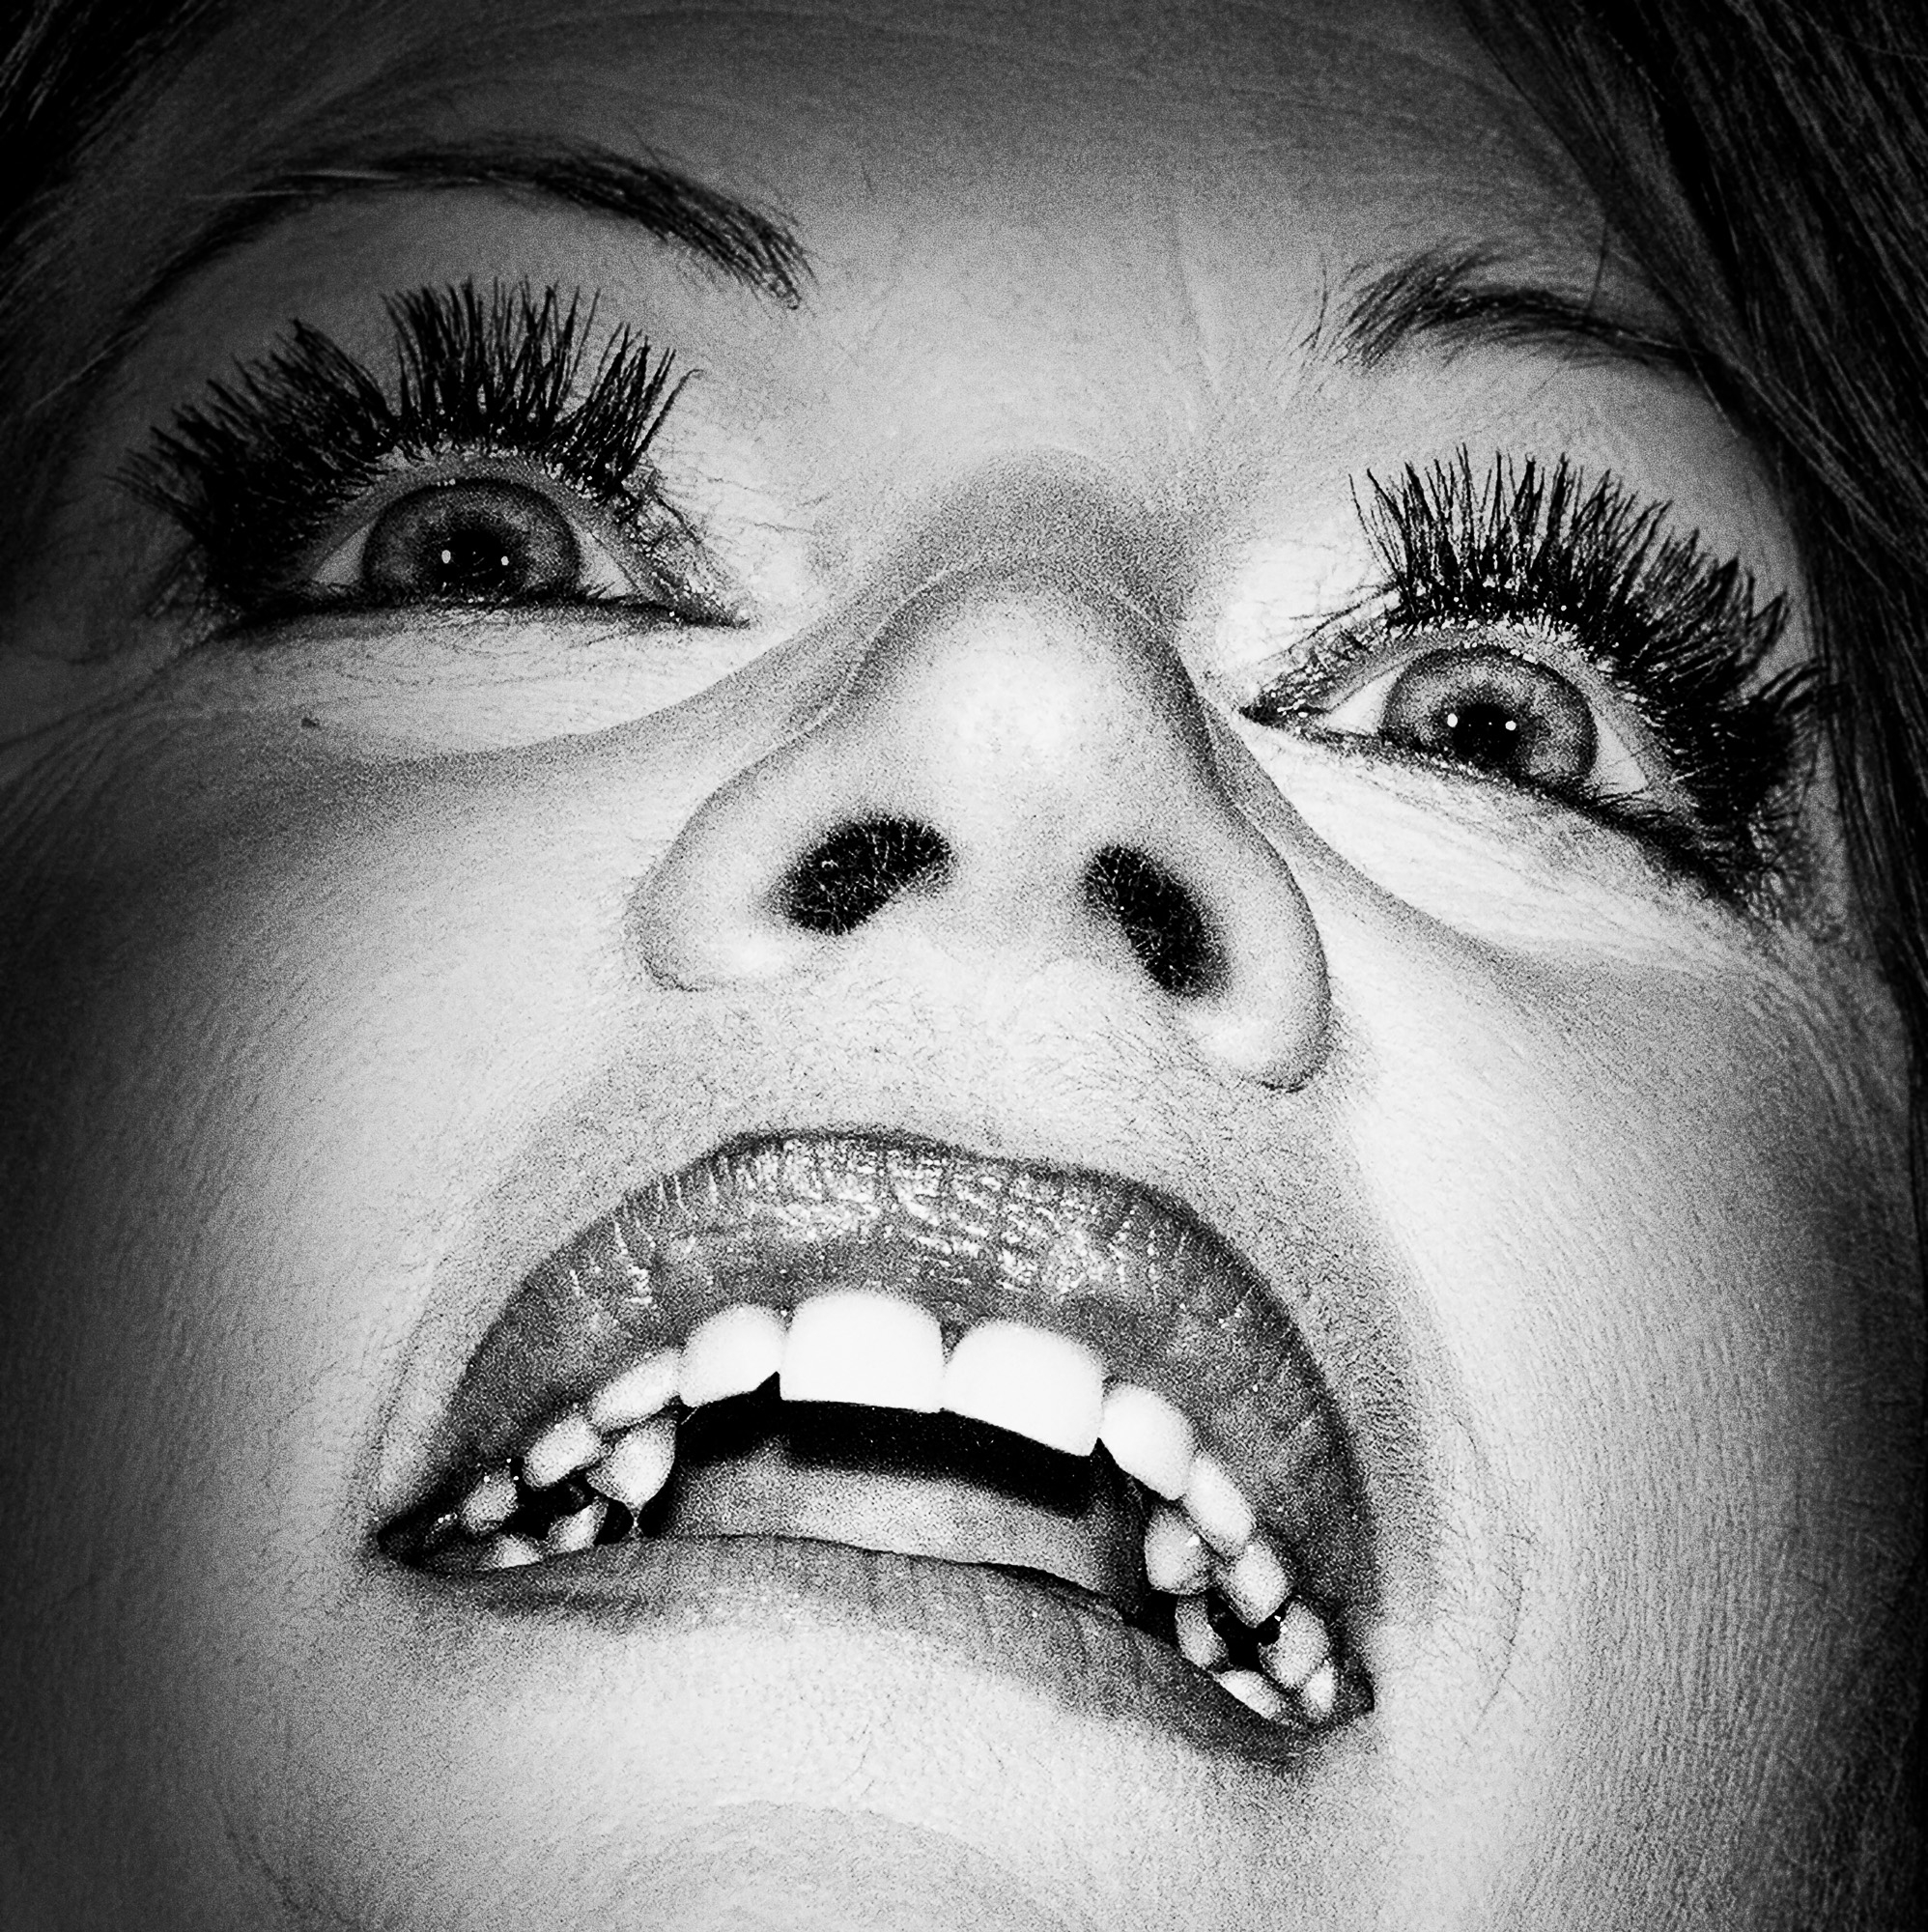 Rep Michelle Bachmann at the 5th anniversary of the Tea Party in